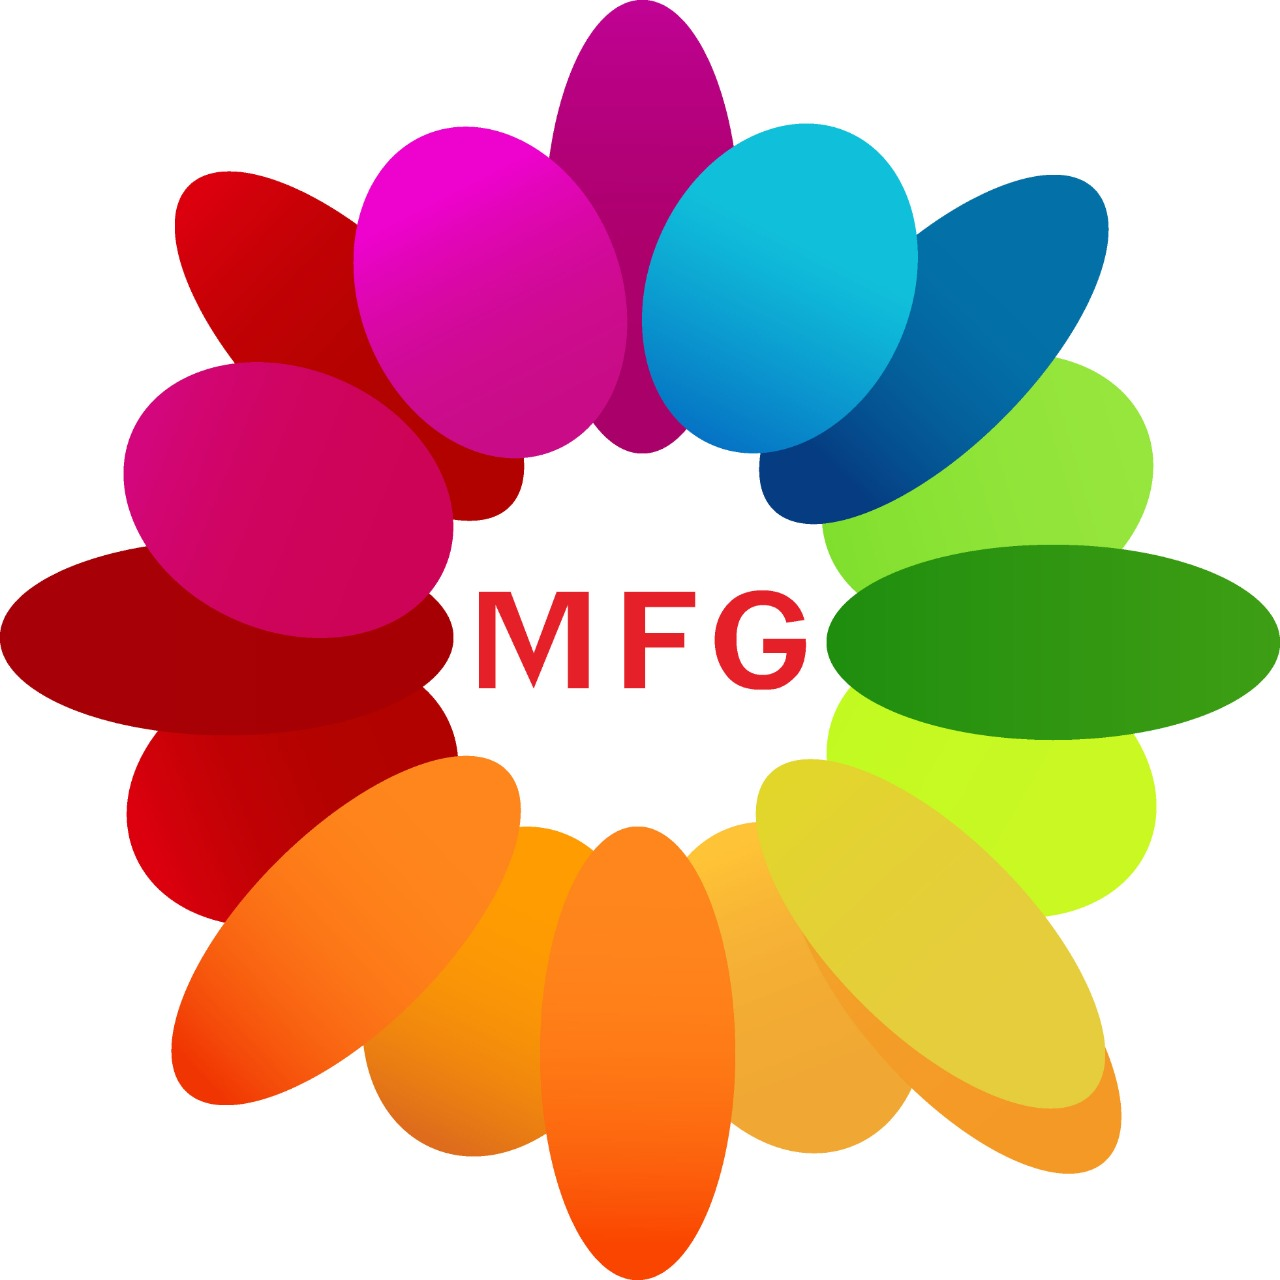 Half kg mix fruit premium quality fresh cream cake with box of cadburys pemium chocolate with 6 inch white teddy bear